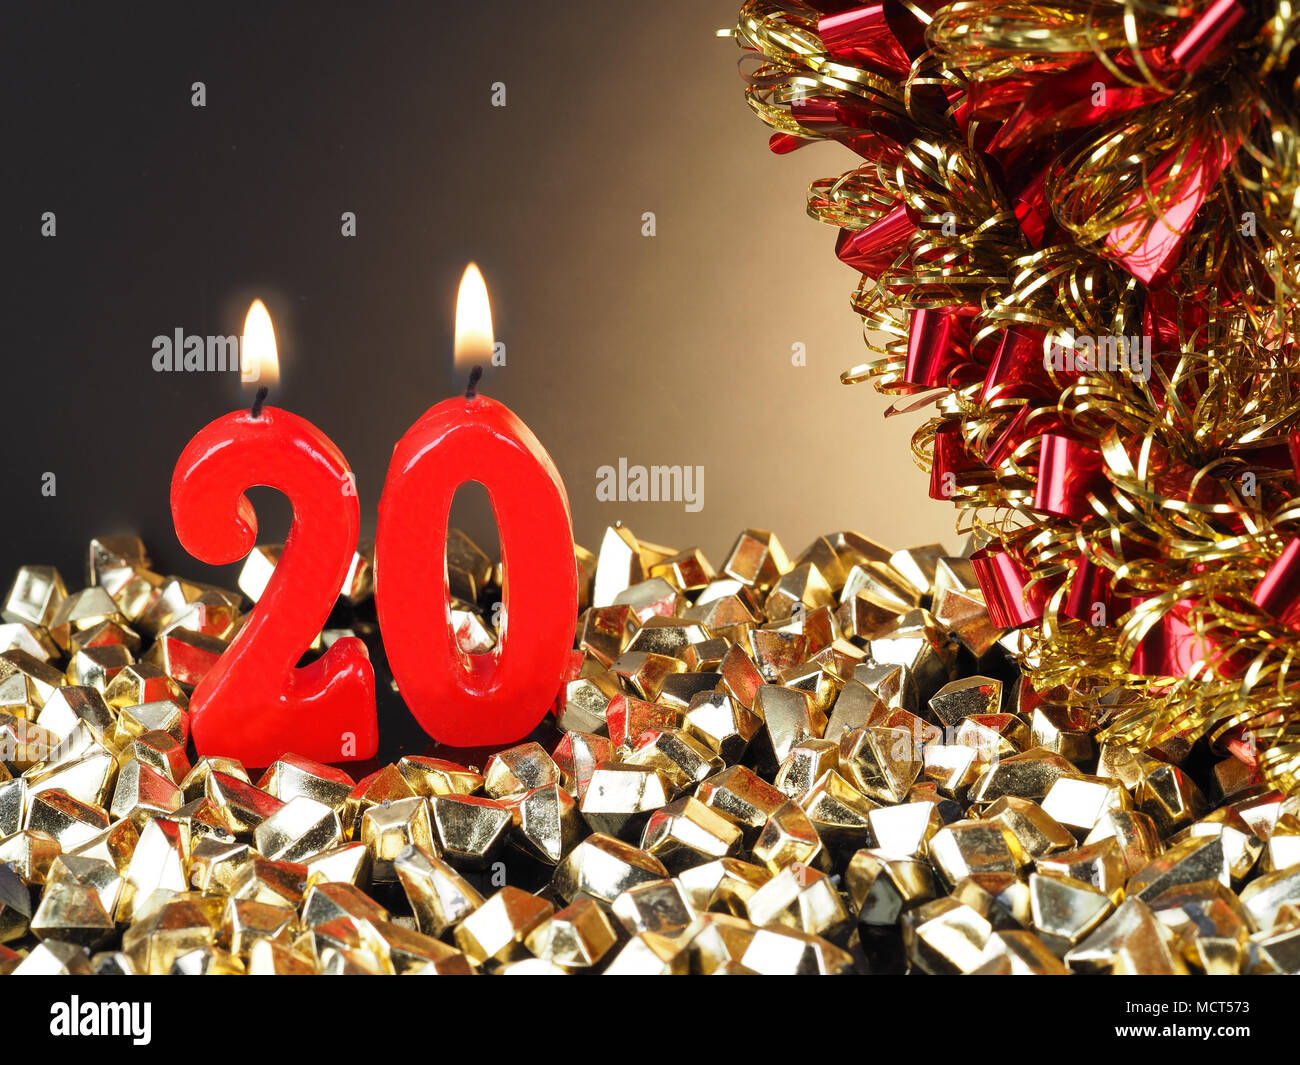 Birthday-anniversary candle showing Nr. 20  Lit red candle good for an anniversary or birthday background. - Stock Image